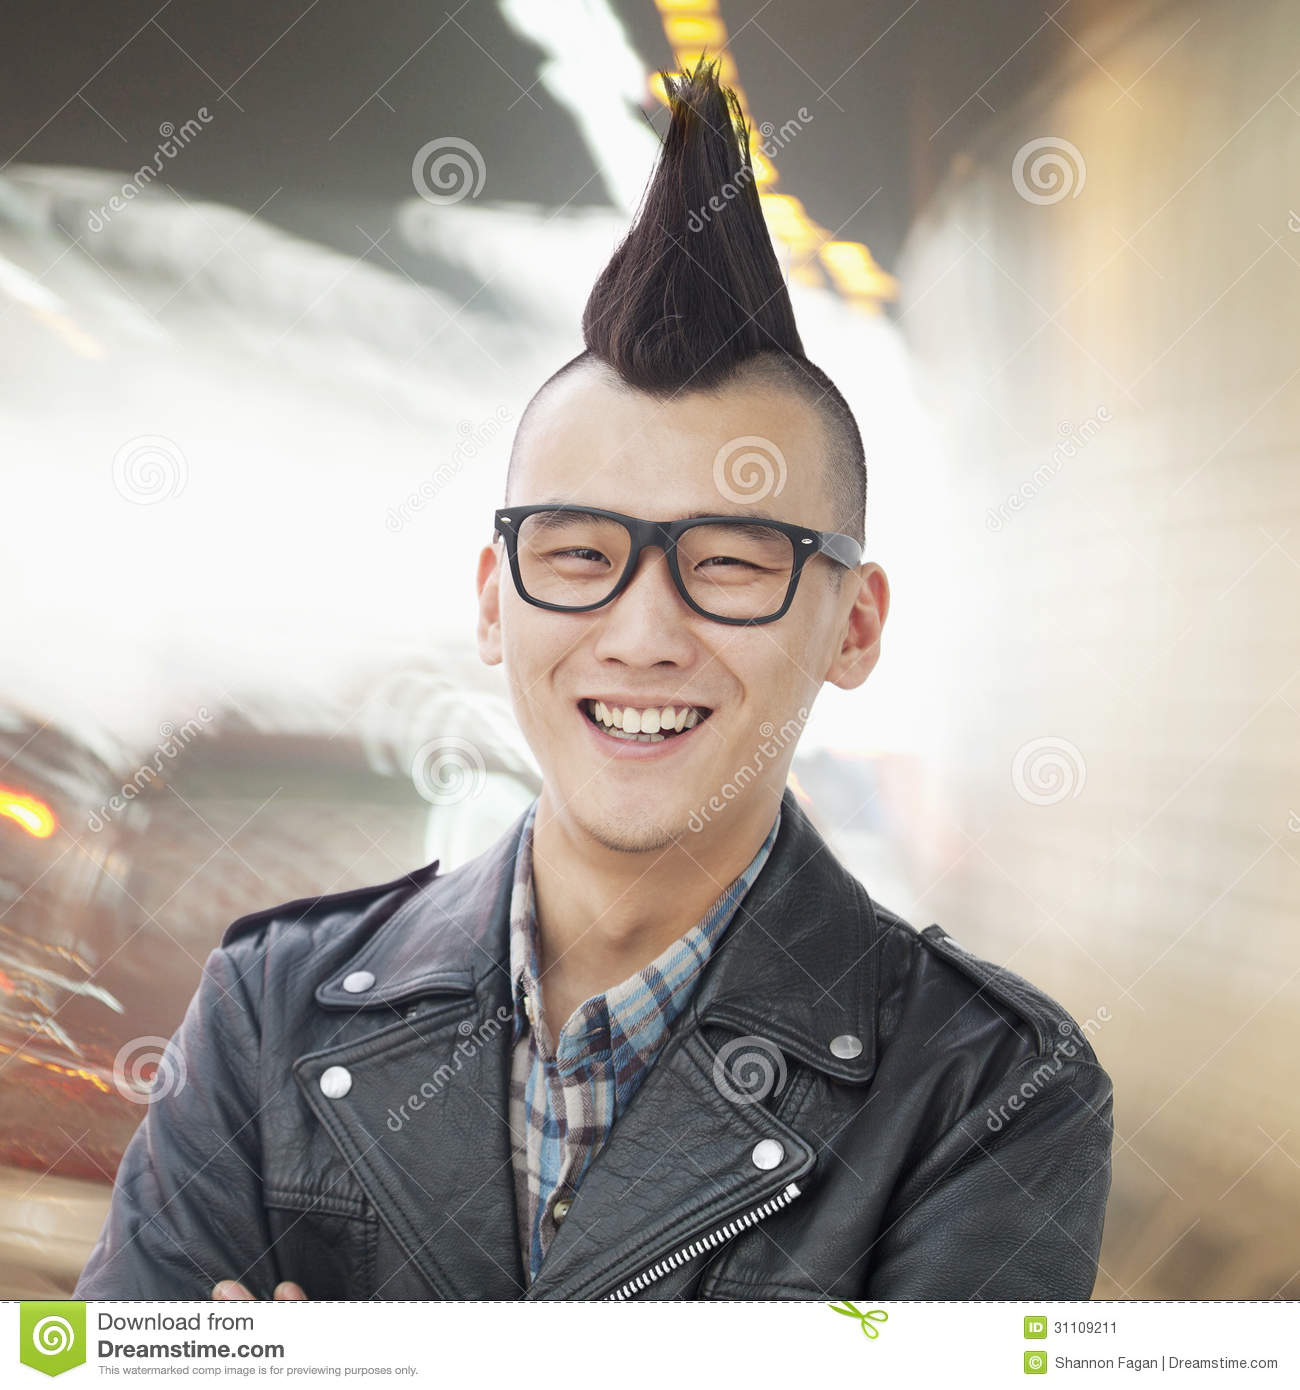 smiling young man with punk mohawk and glasses looking at